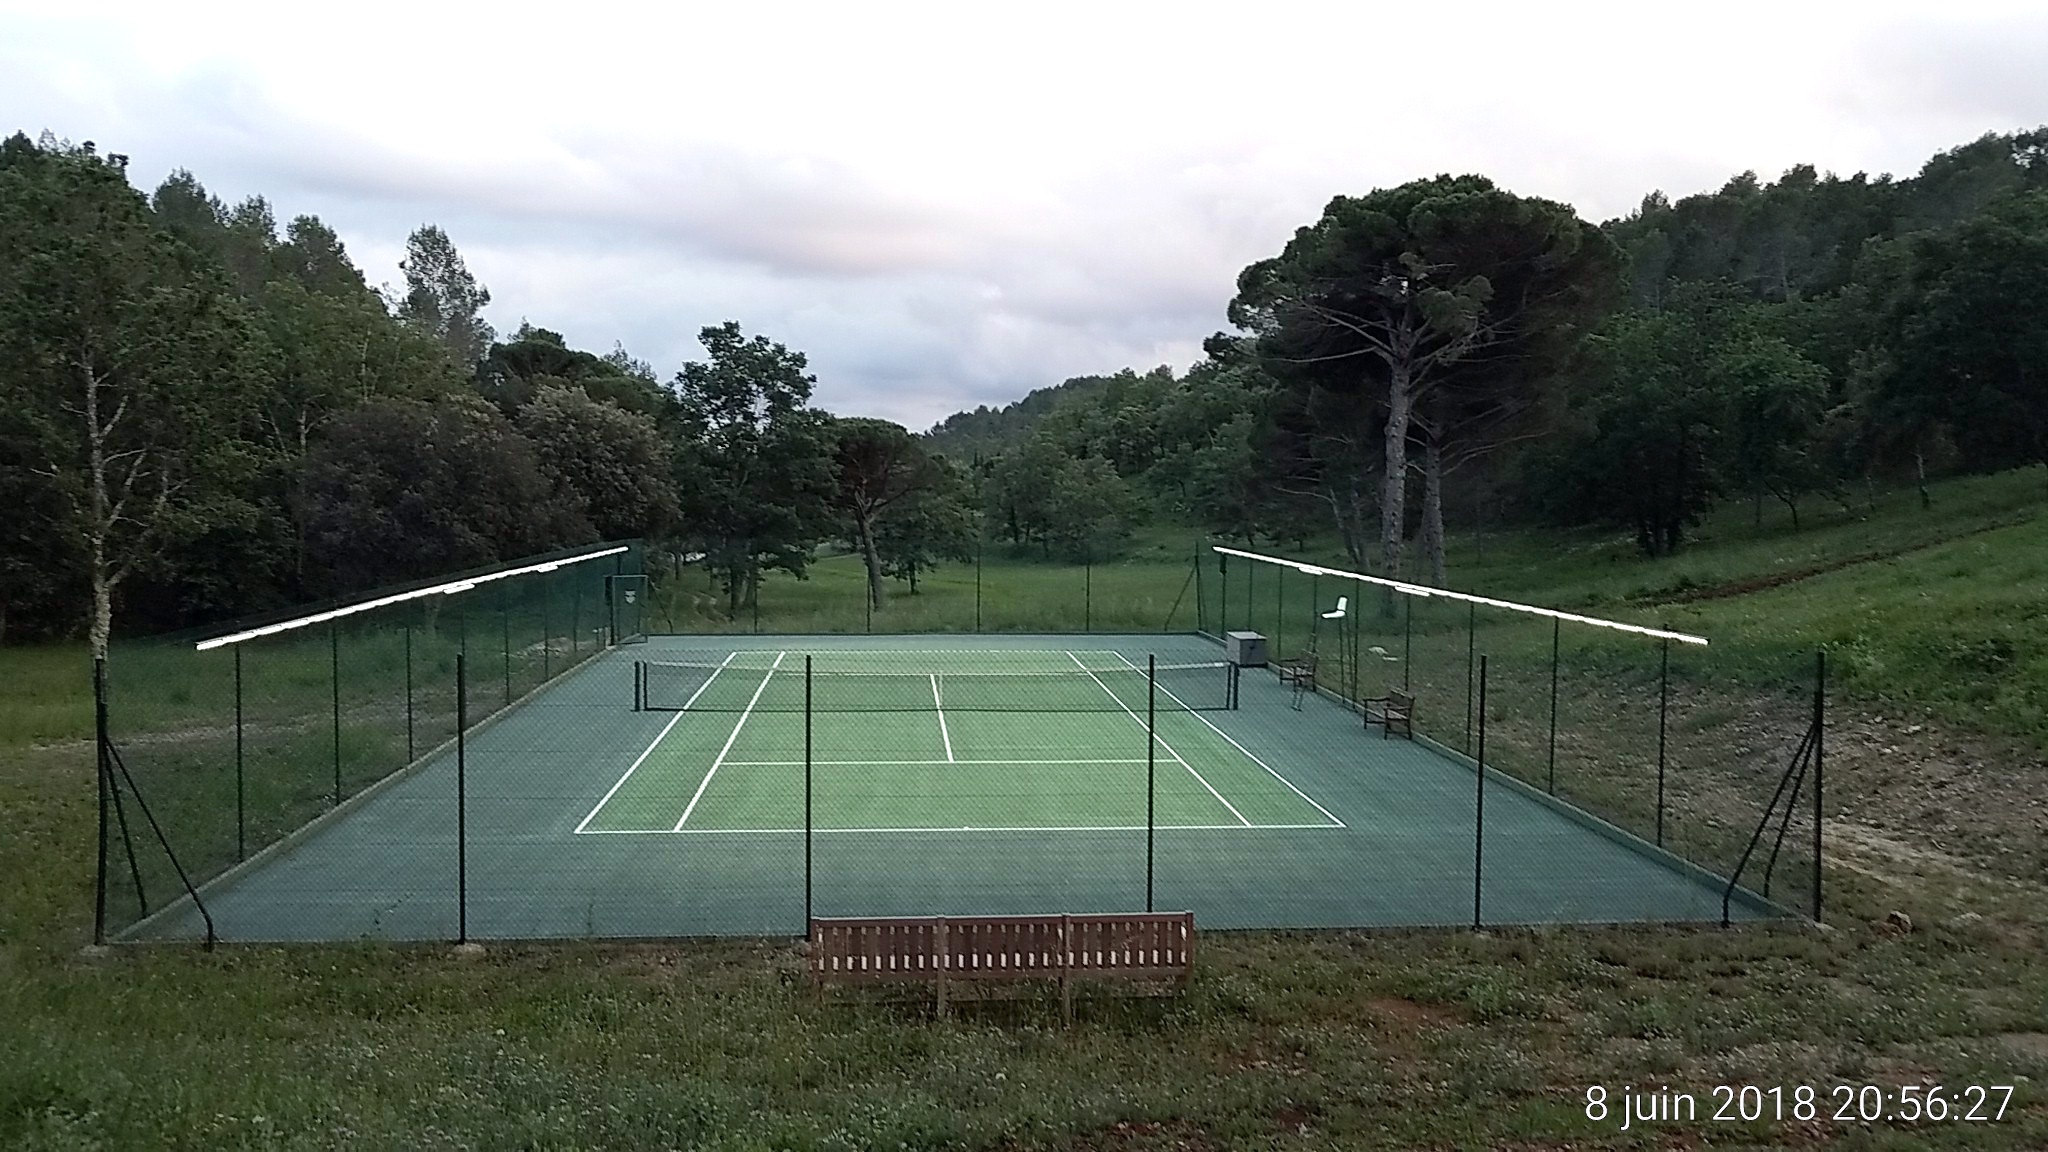 Tweener®'s revolutionary tennis court lighting integrates into your court's fencing with easy installation.